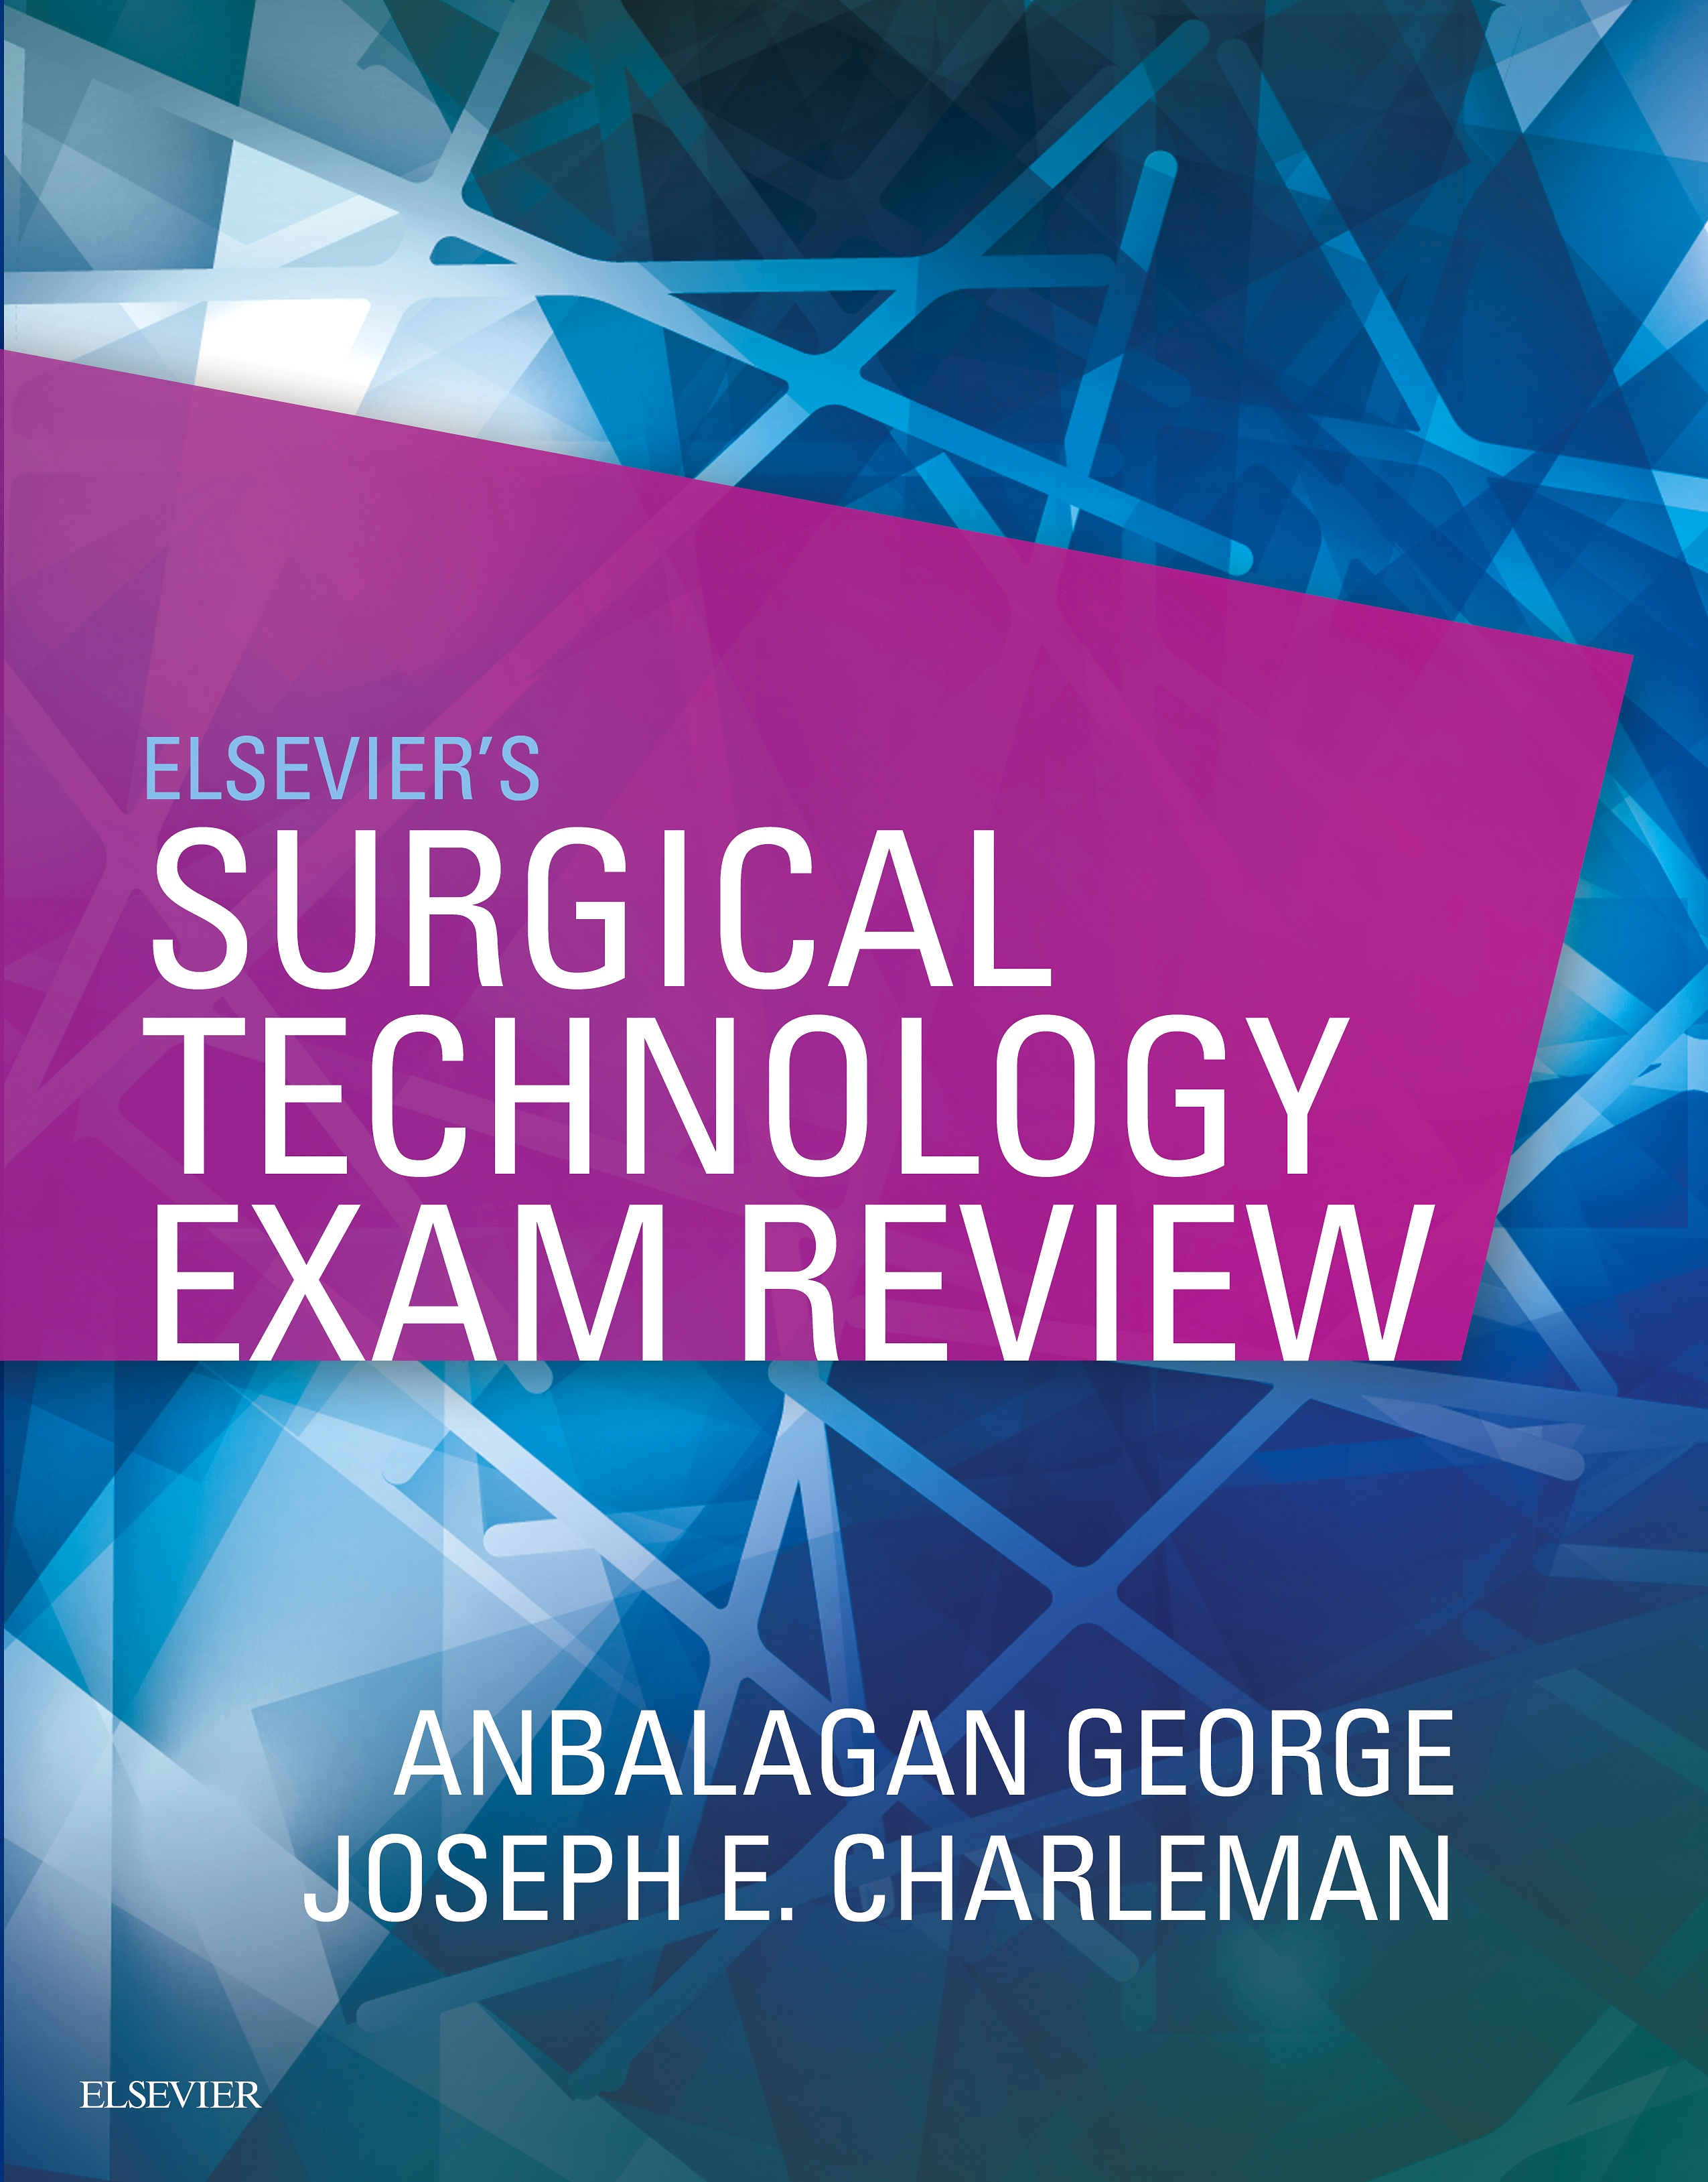 Evolve Resources for Elsevier's Surgical Technology Exam Review